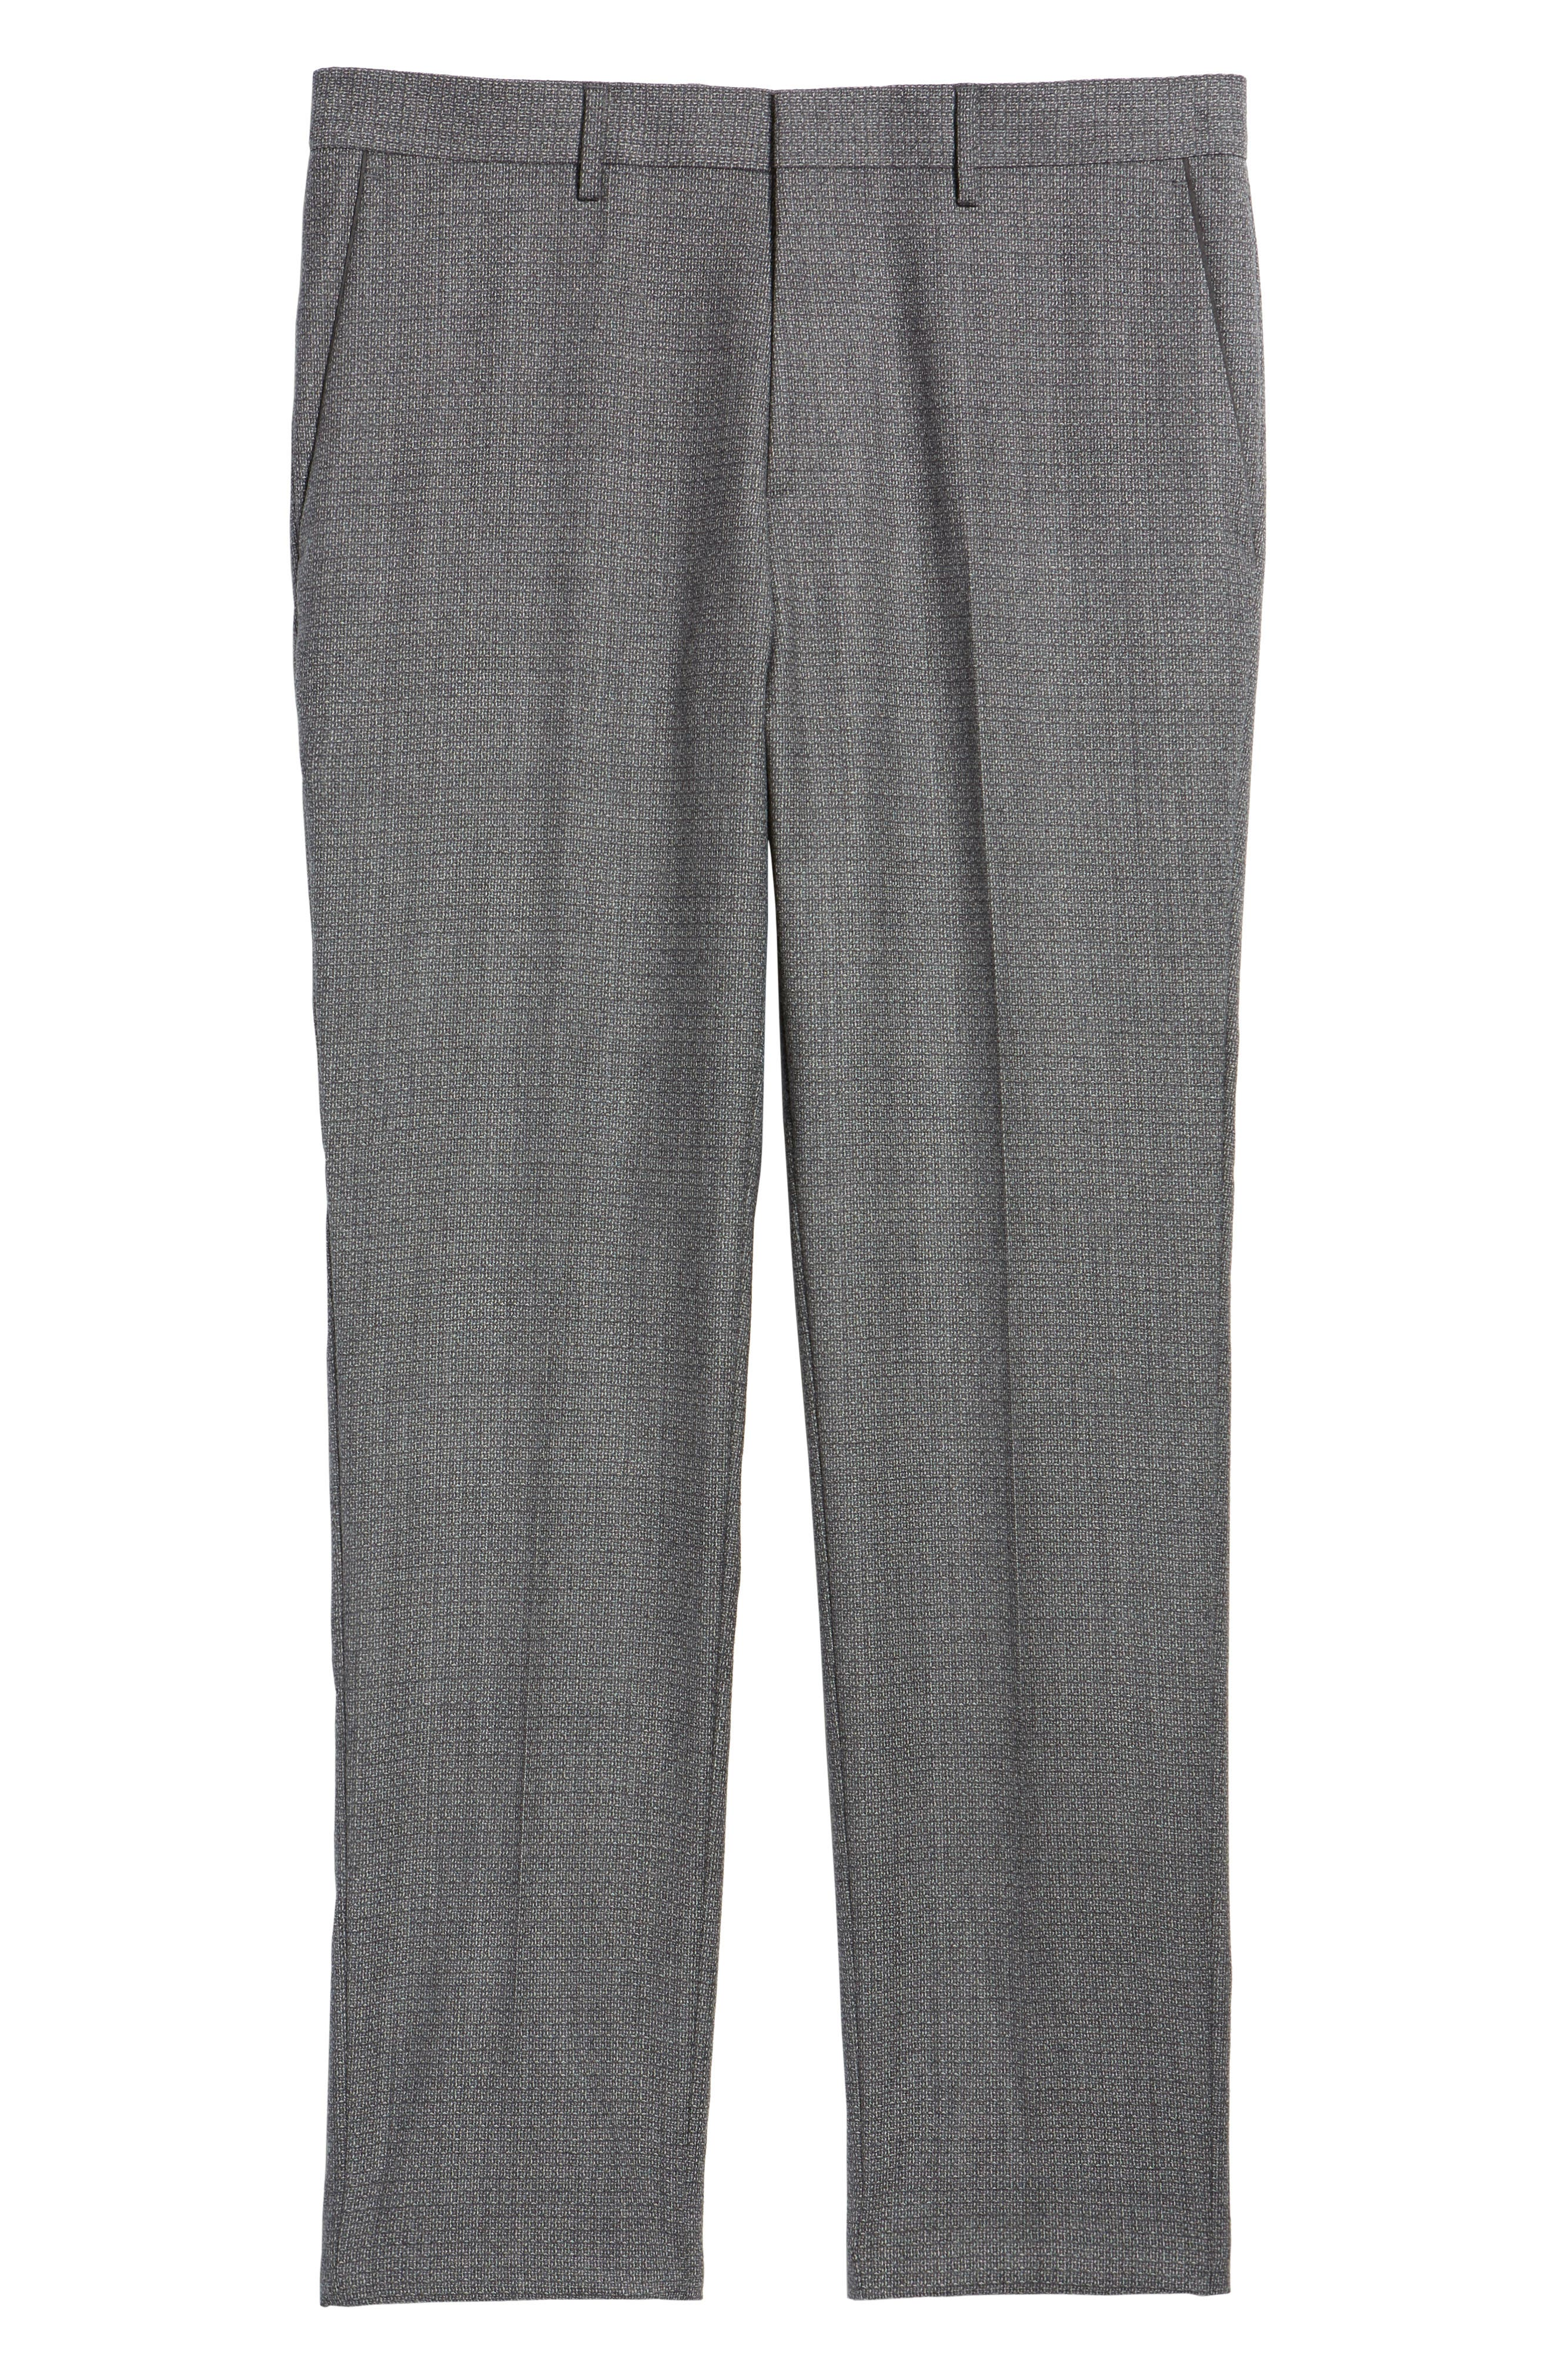 Giro Flat Front Solid Wool Trousers,                             Alternate thumbnail 6, color,                             030